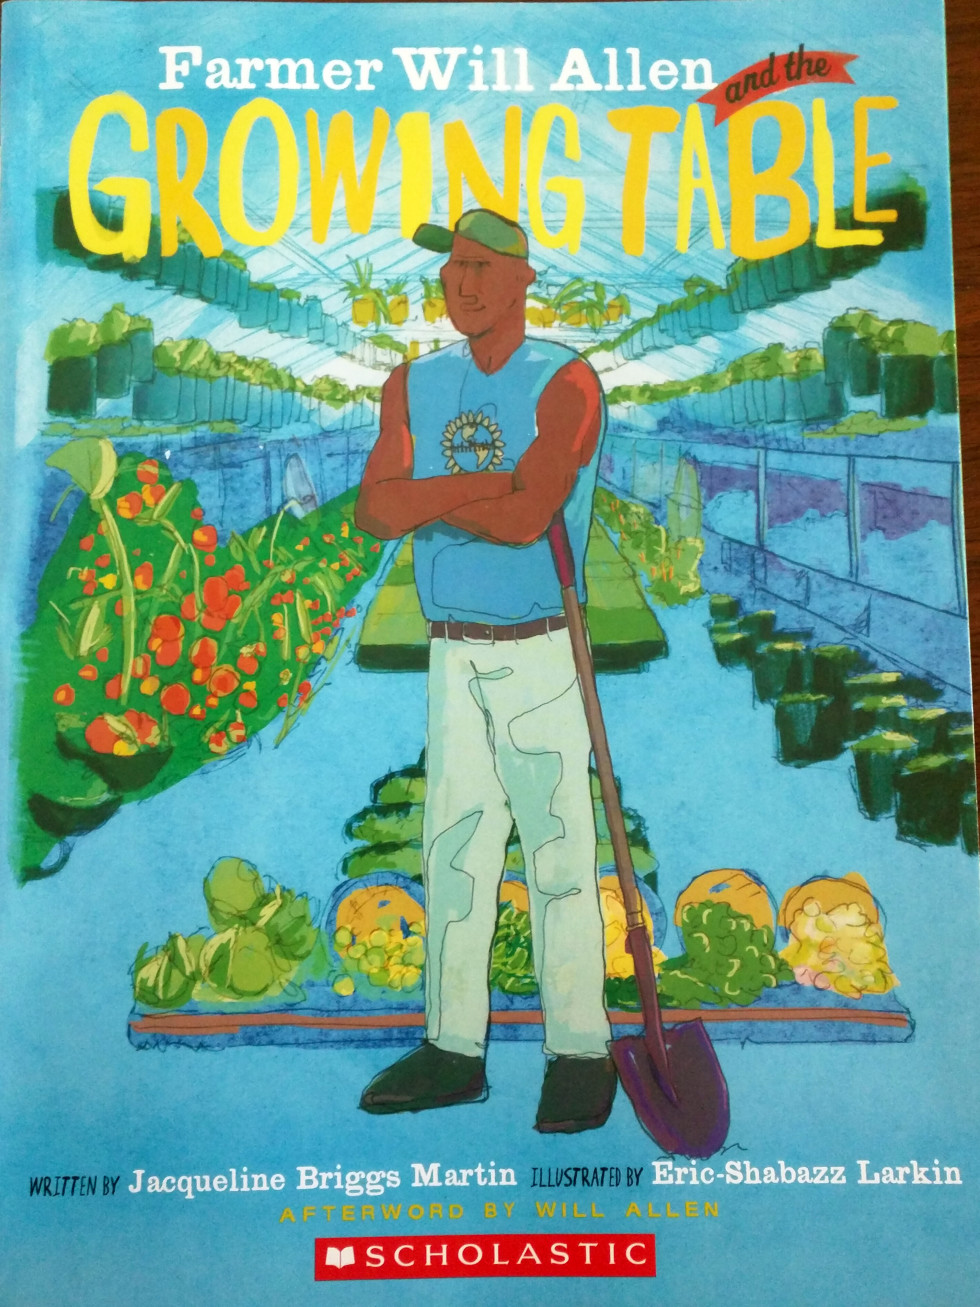 Points of Light conference, book Farmer Will Allen and the Growing Table.